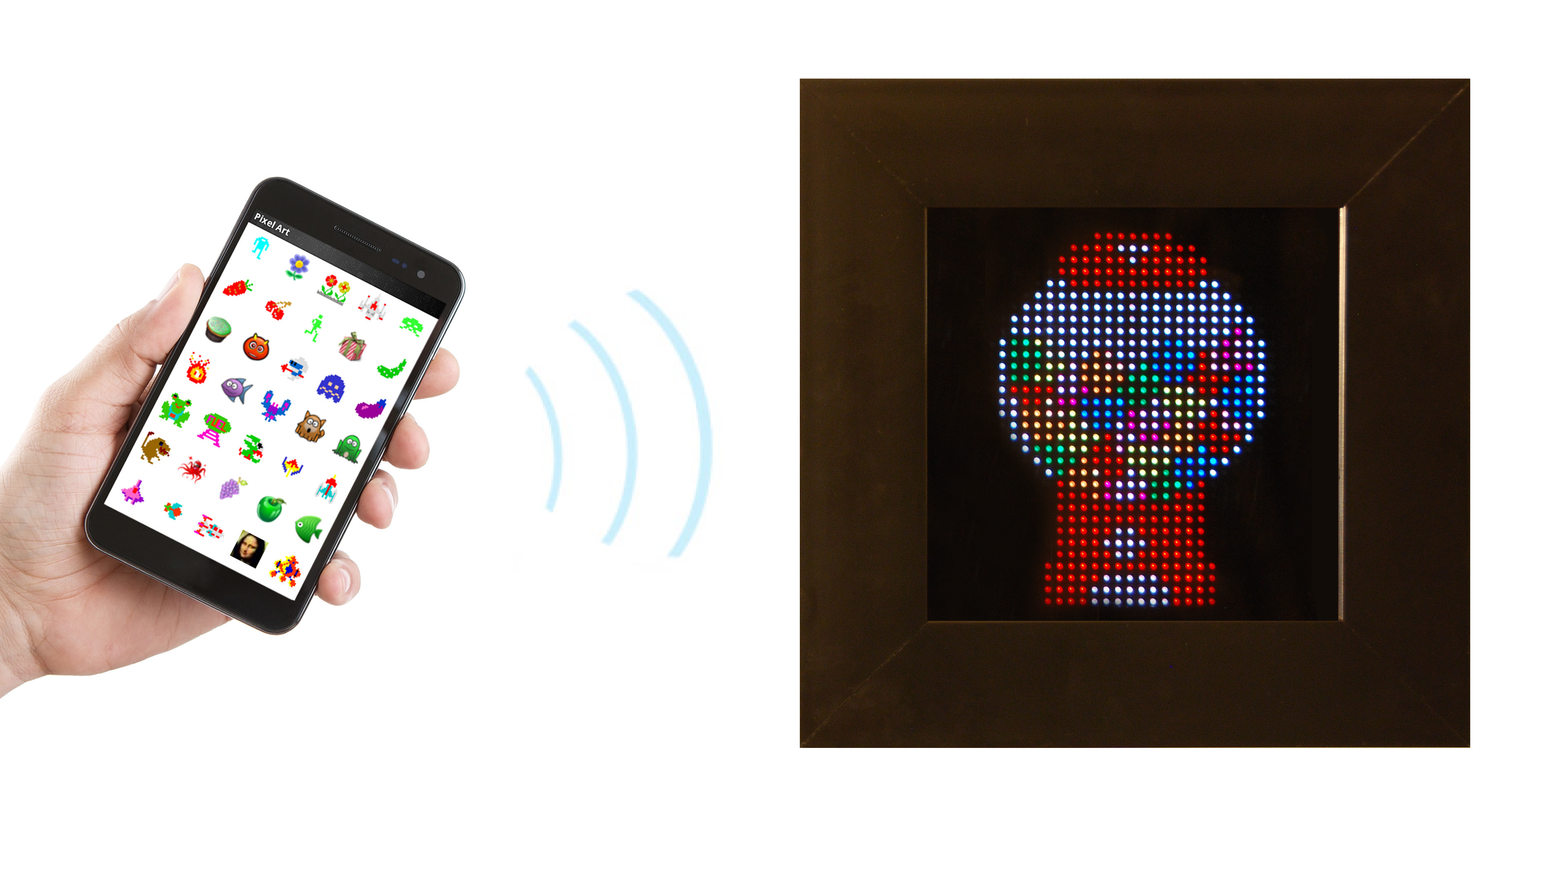 An interactive LED based display for retro pixel art. Use your Android device to change the image or animation.